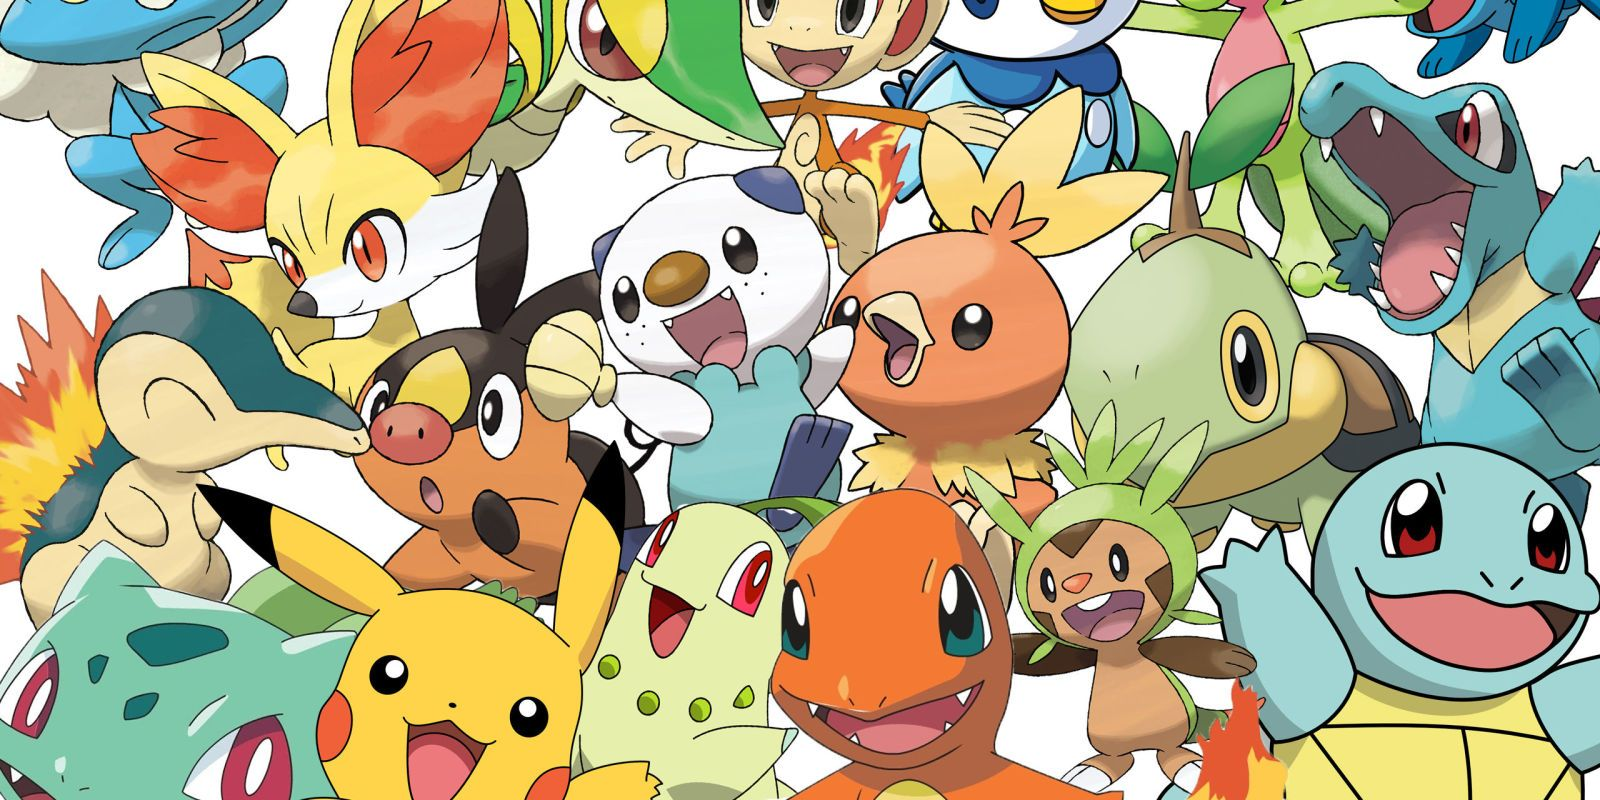 Can You Name These Pokémon By Their Picture? | TheQuiz